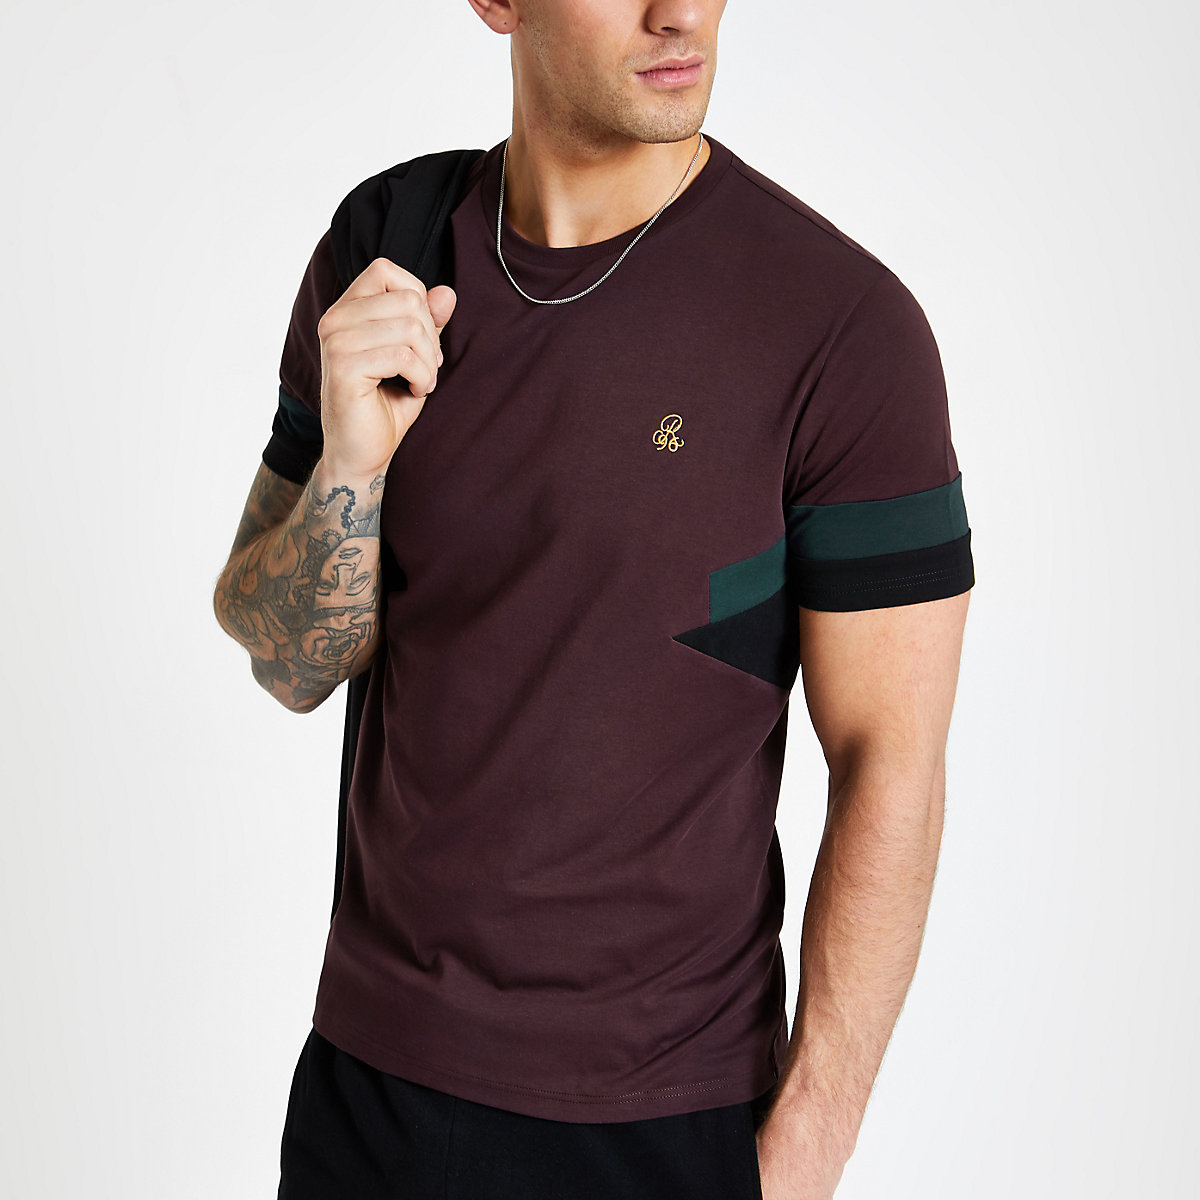 R96 burgundy slim fit short sleeve T-shirt